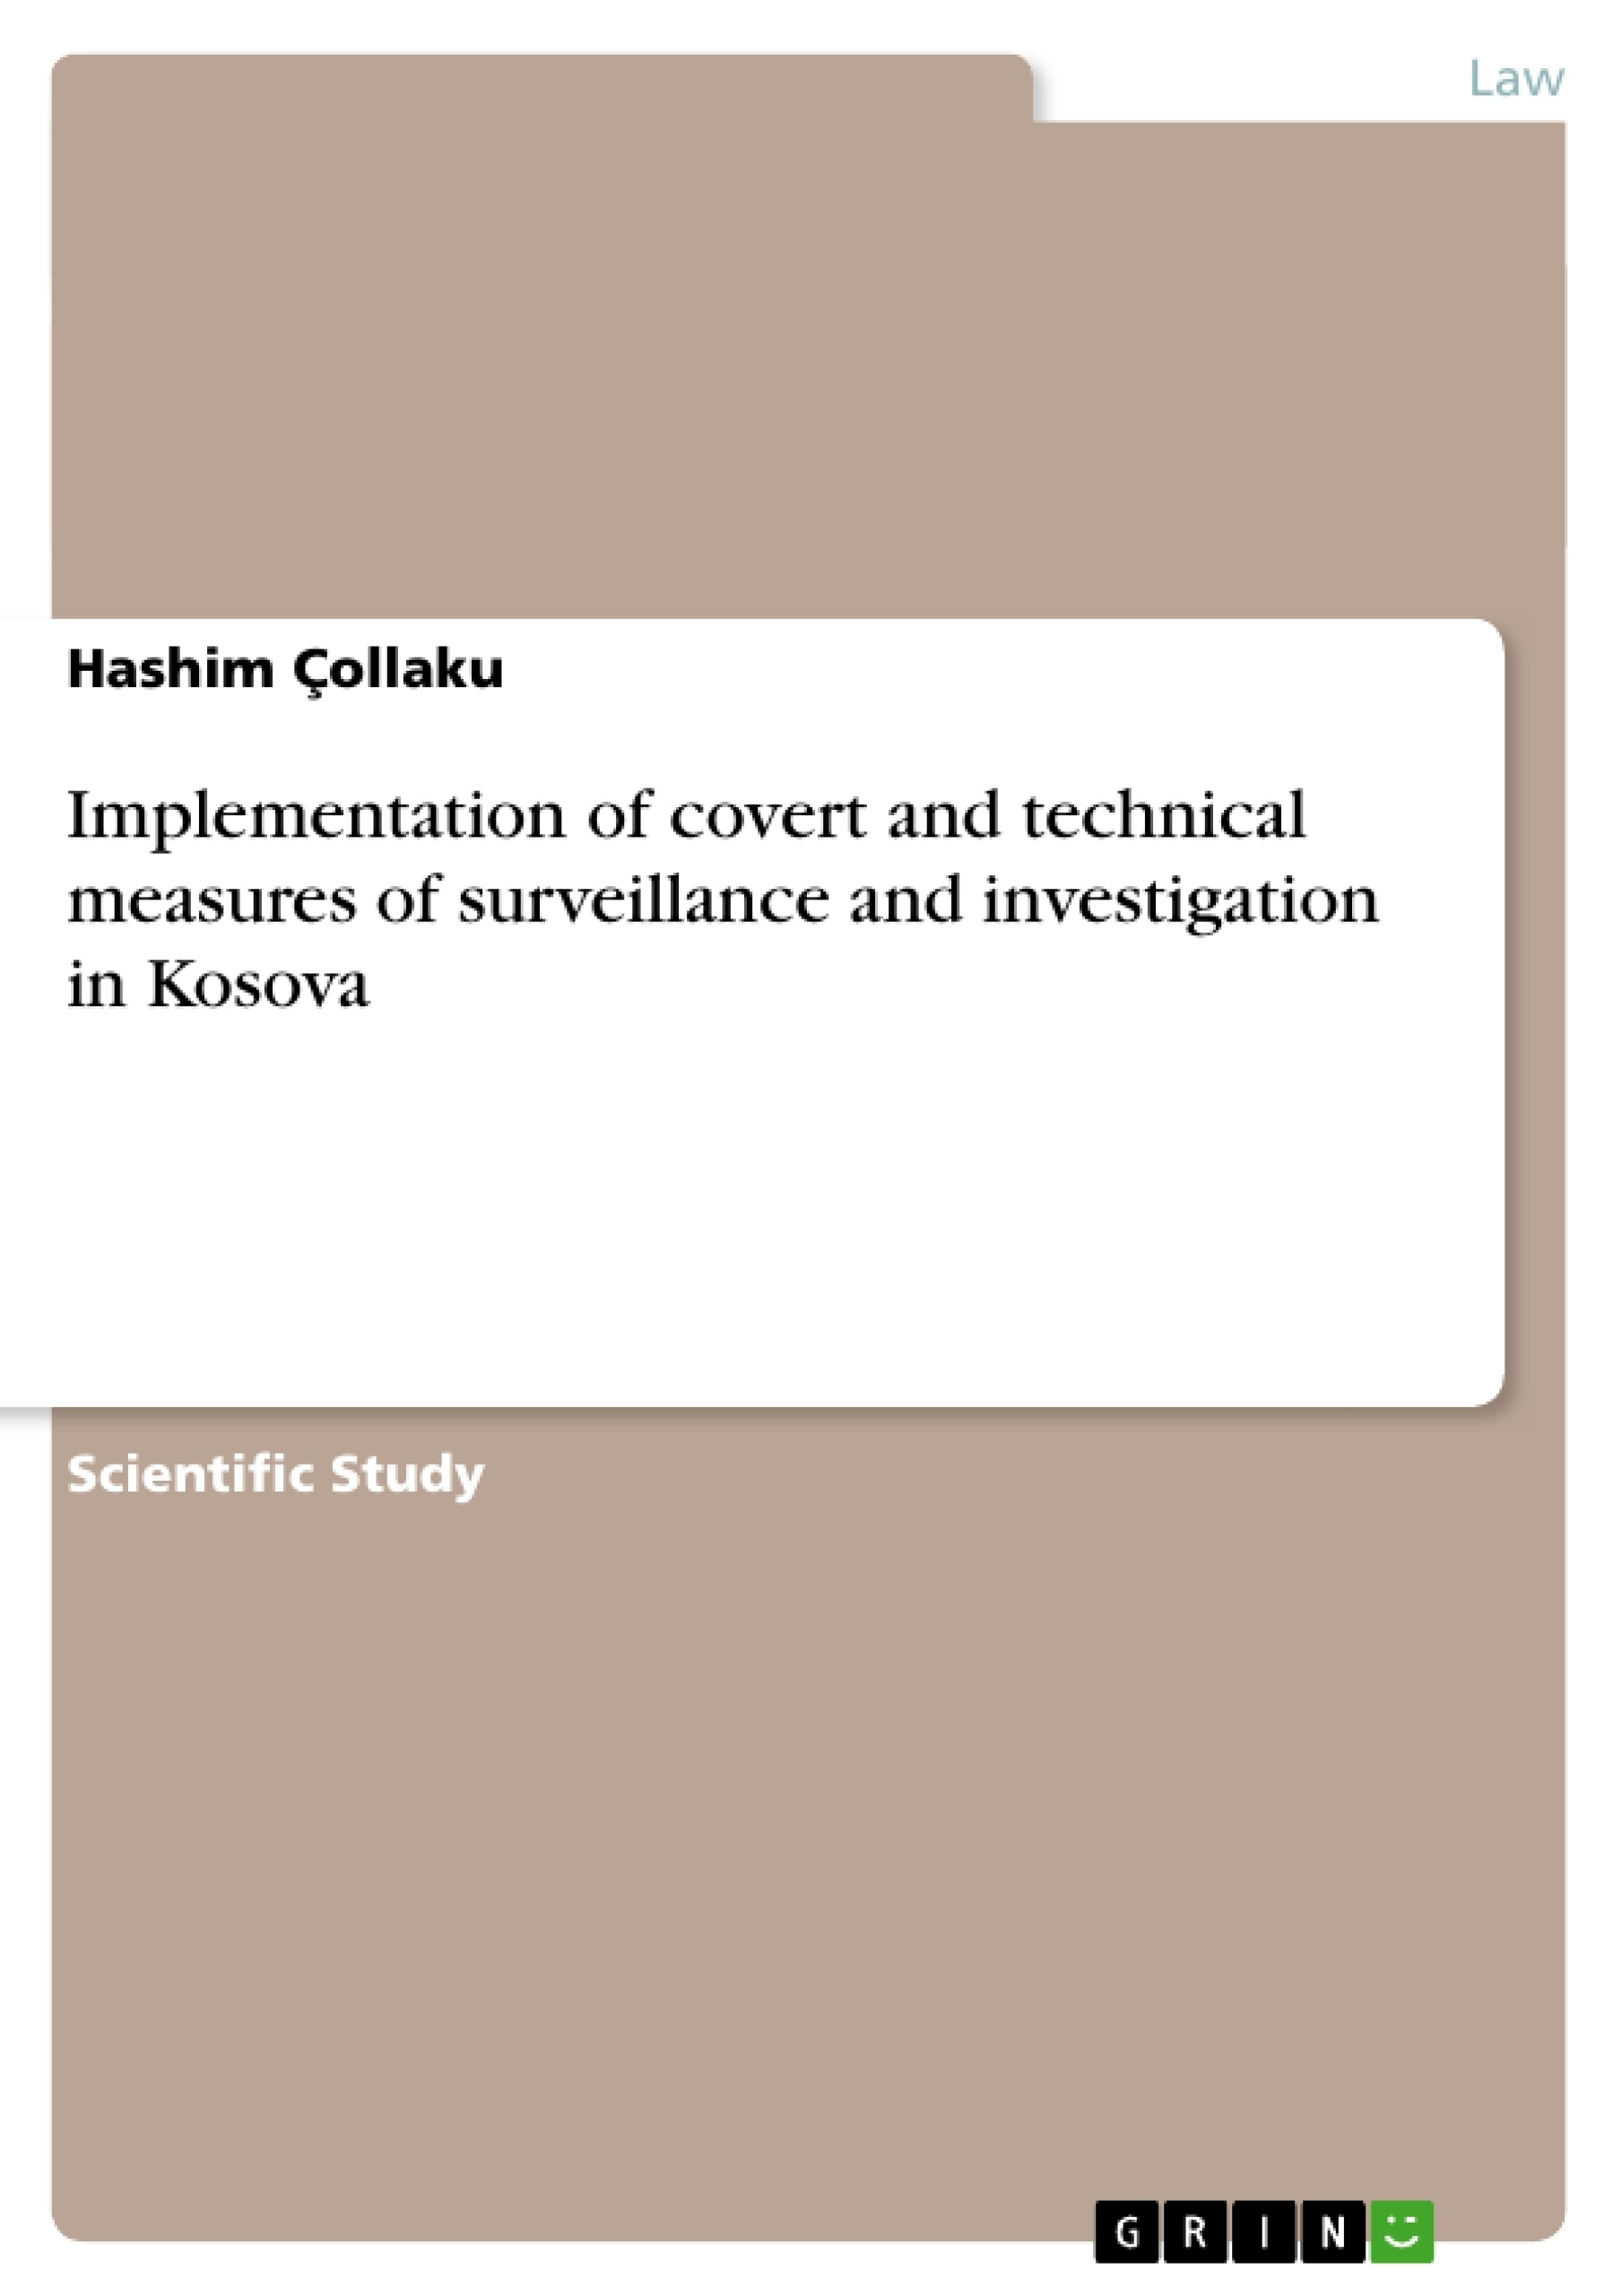 Title: Implementation of covert and technical measures of surveillance and investigation in Kosova